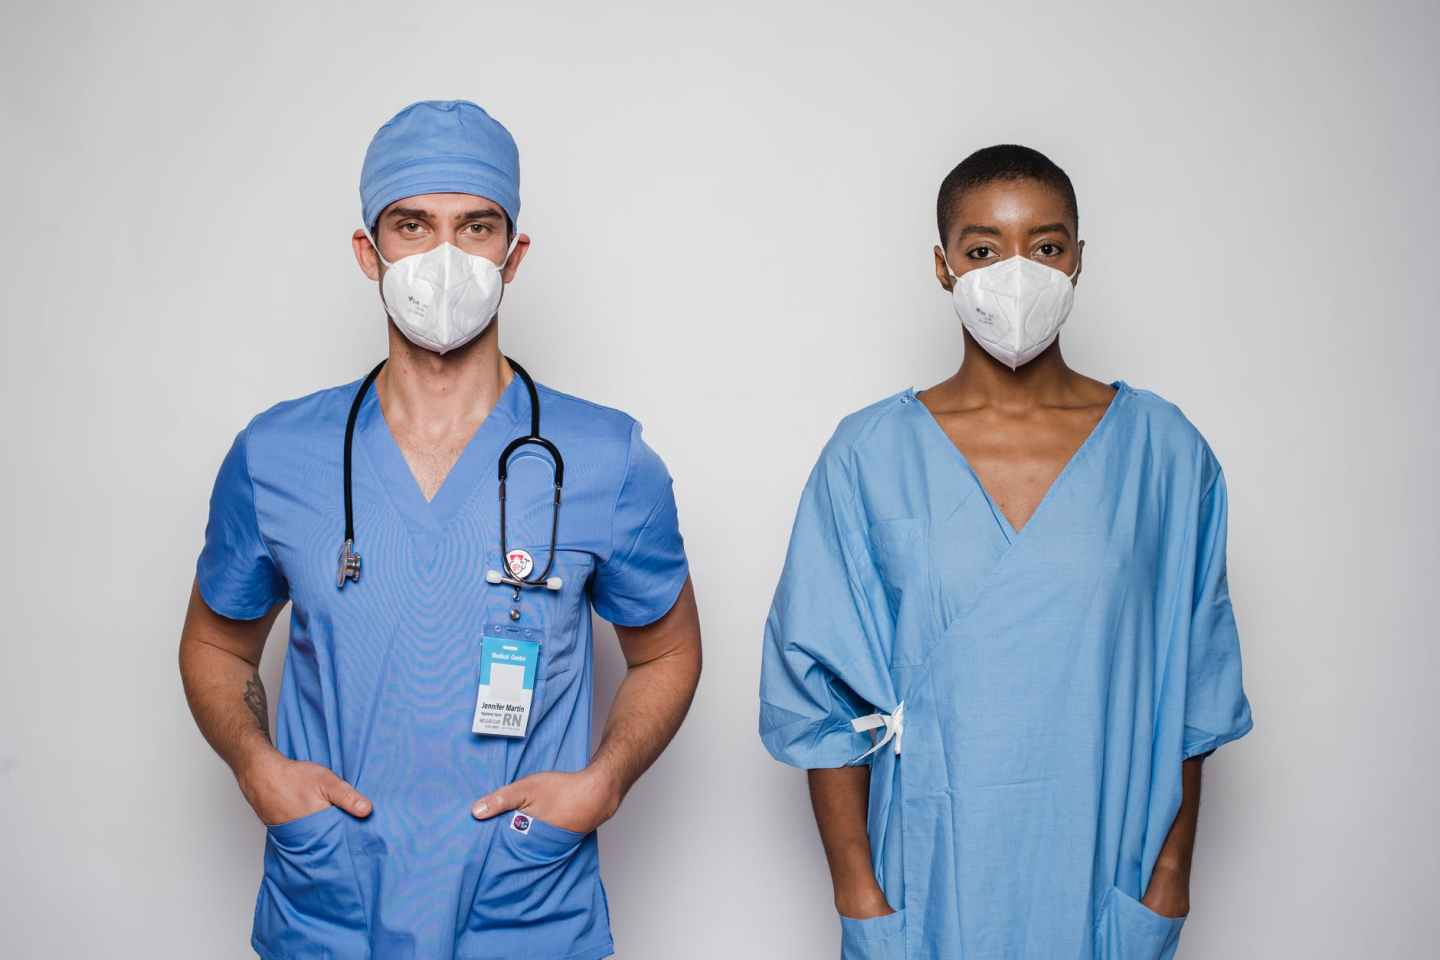 multiracial doctor and patient in uniform and masks